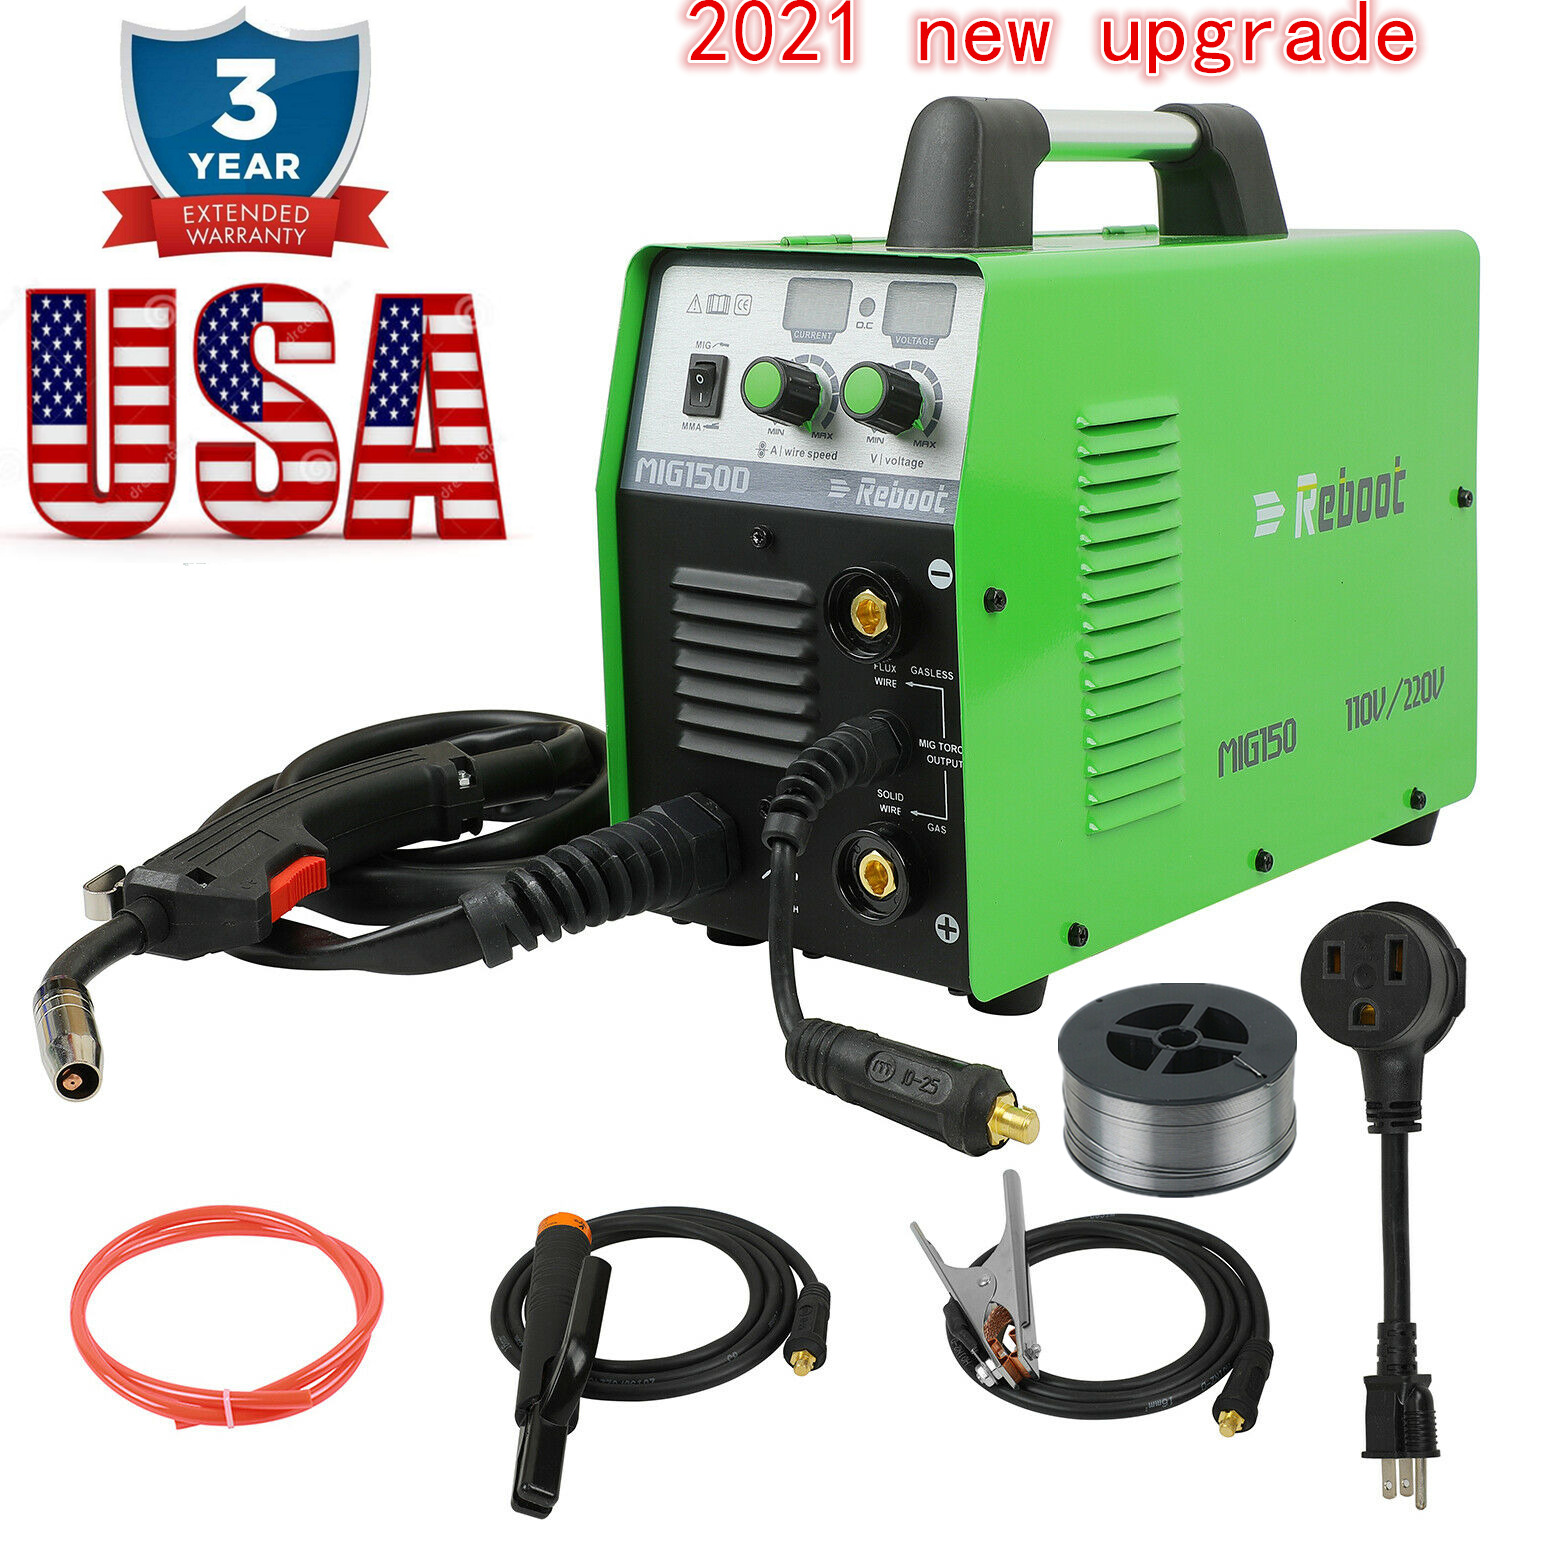 MIG Welder 150 Gas Gasless 110V 220V ARC Stick MMA Inverter 3 IN 1 150A Welding. Buy it now for 245.99